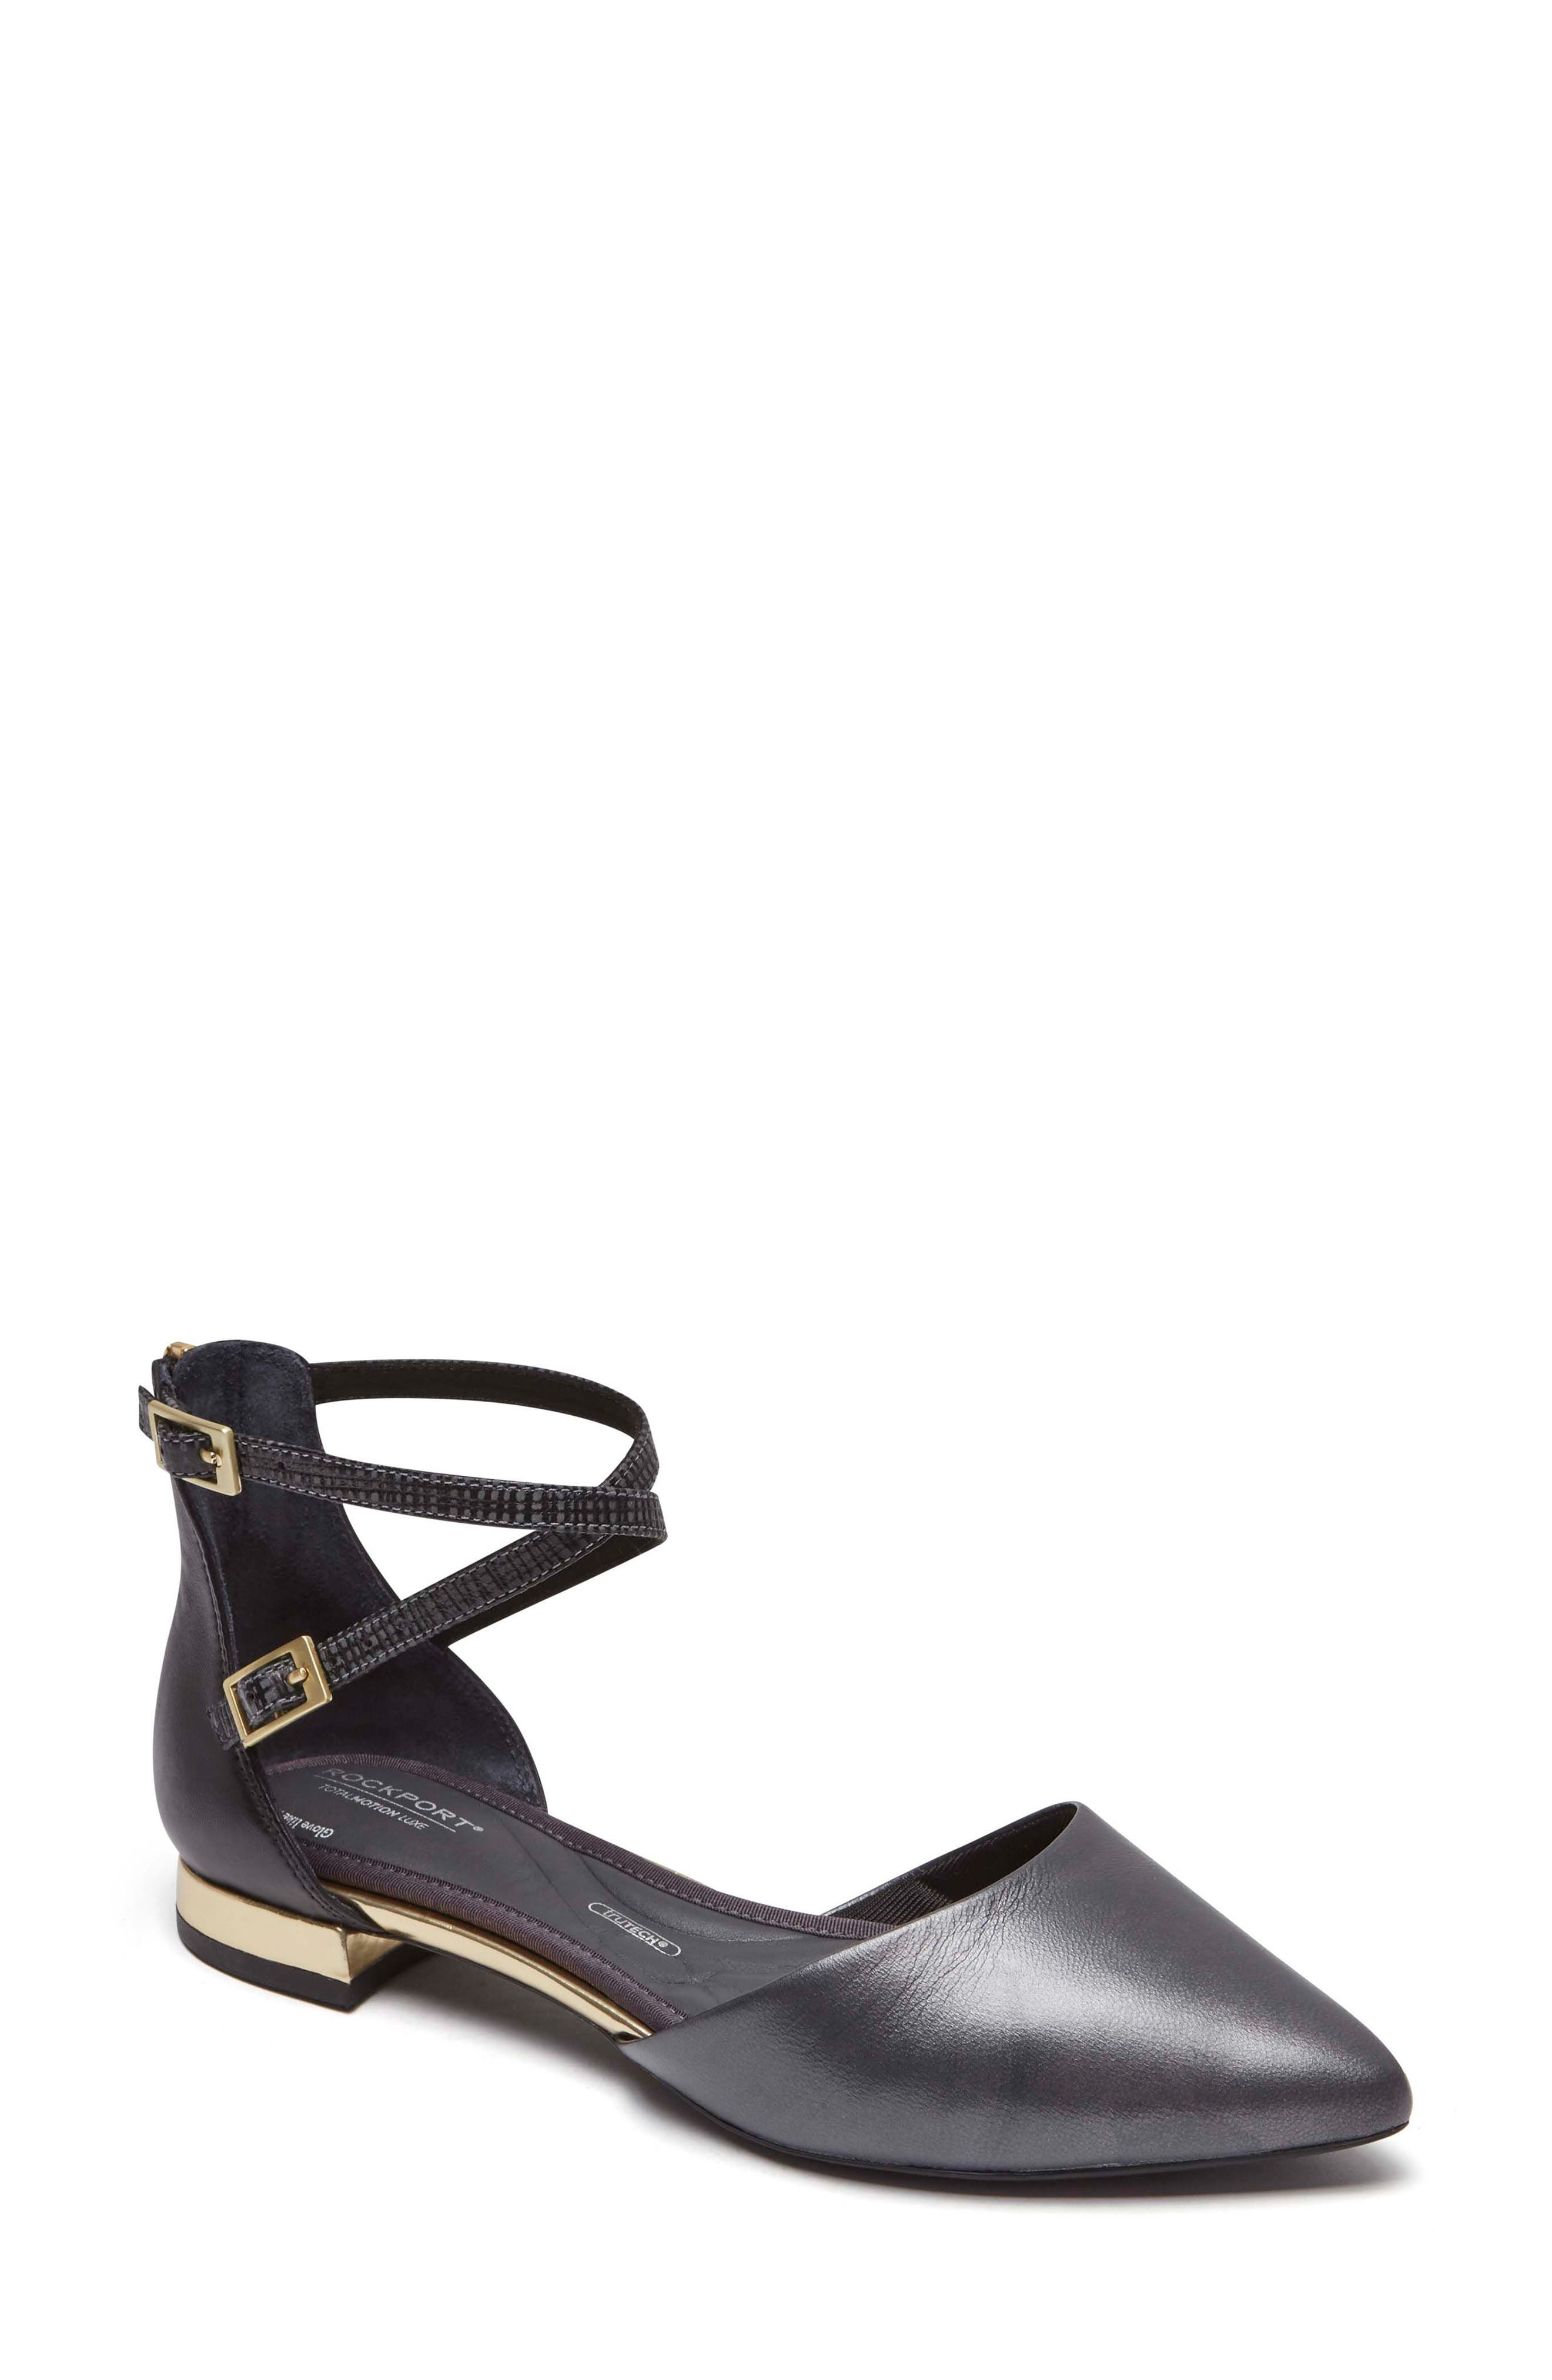 Total Motion<sup>®</sup> Zuly Luxe Ankle Strap Flat,                             Main thumbnail 1, color,                             BLACK LEATHER